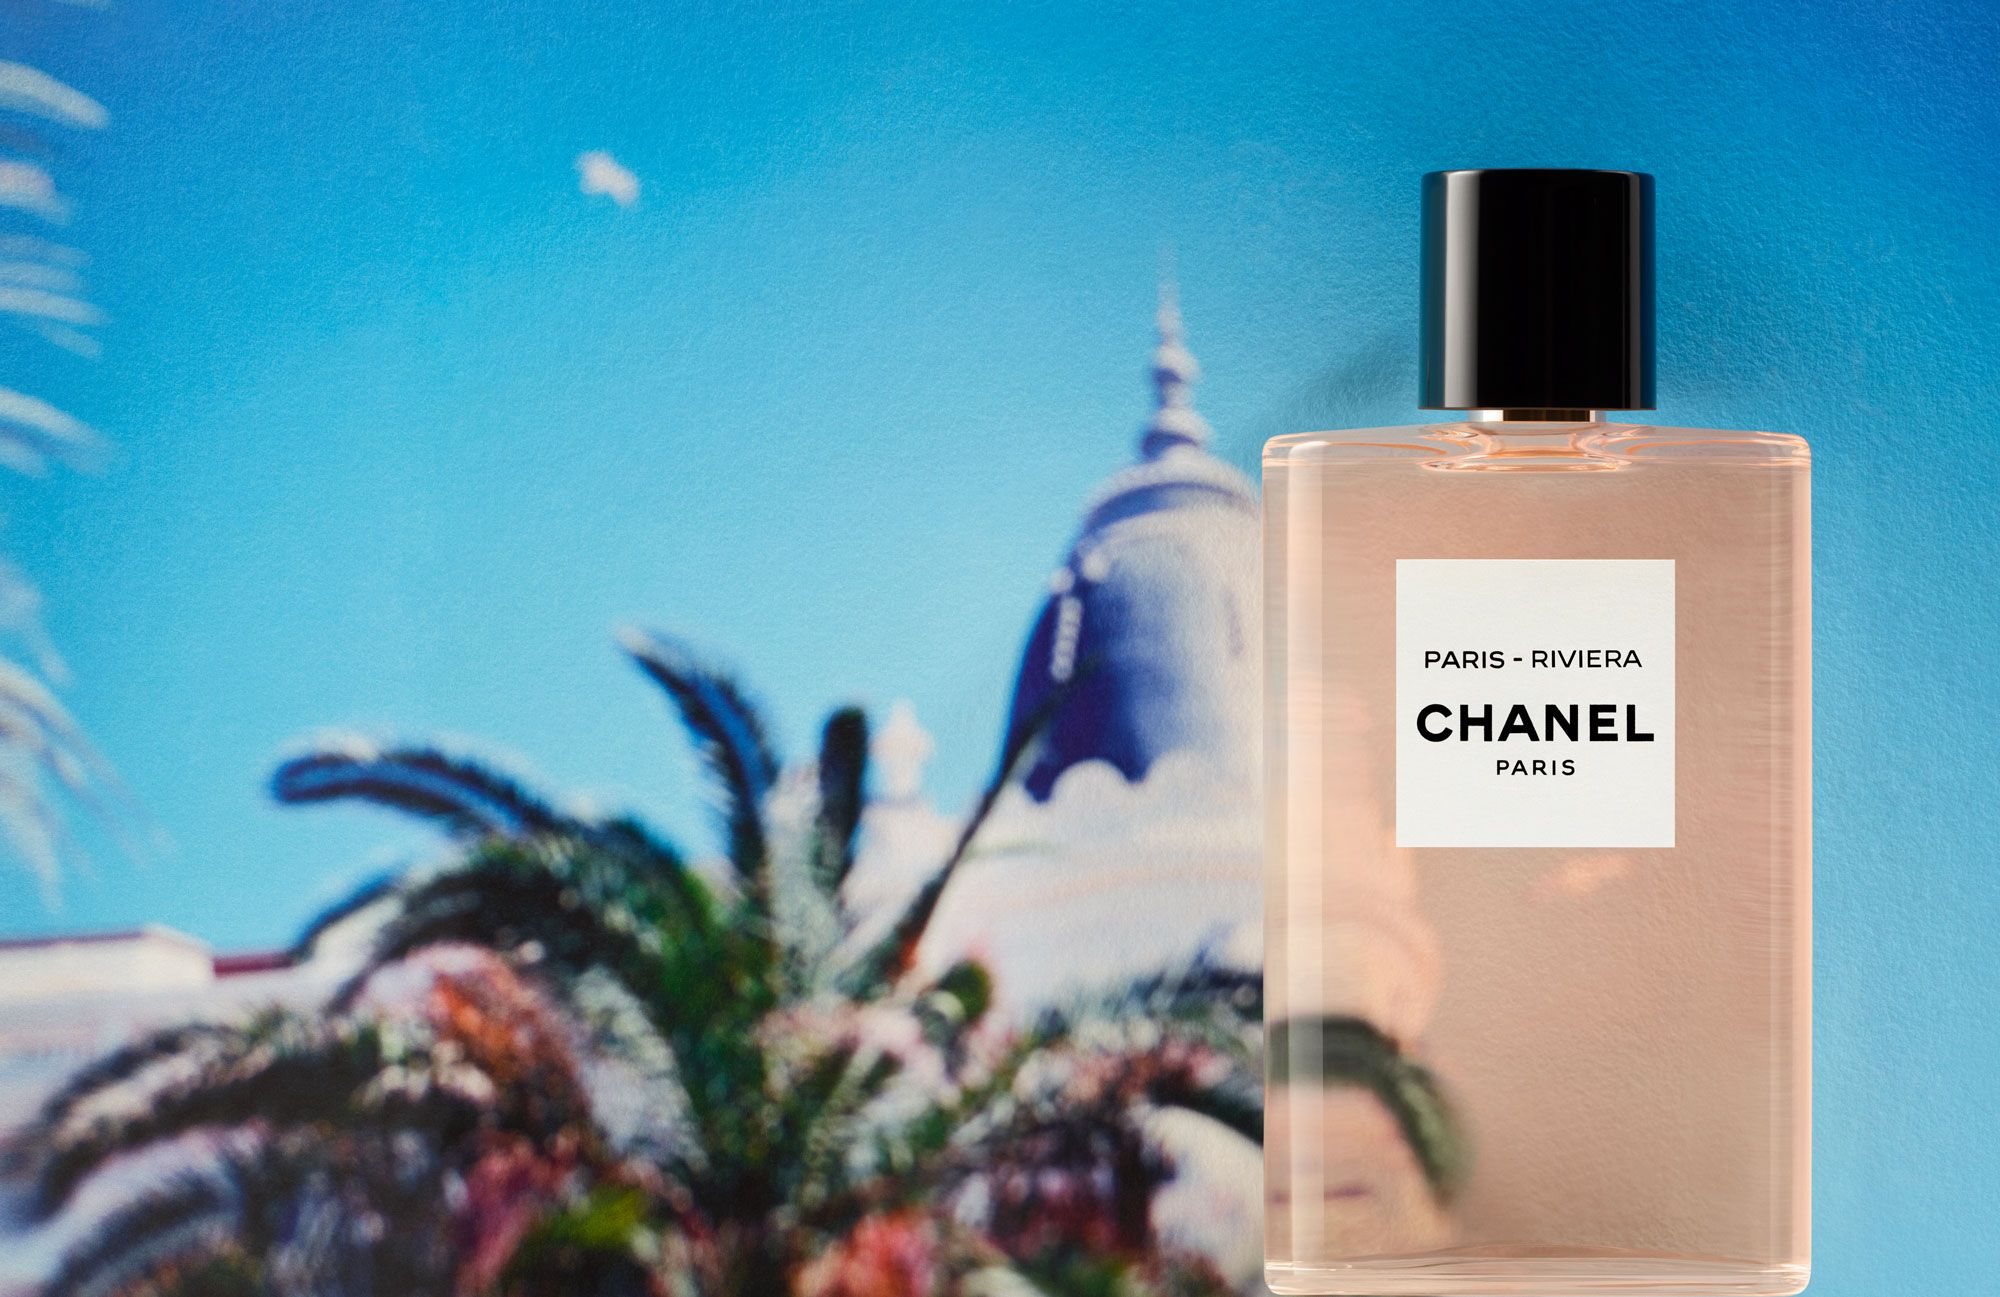 The Côte d'Azur Sets the Scene for Chanel's Newest Scent